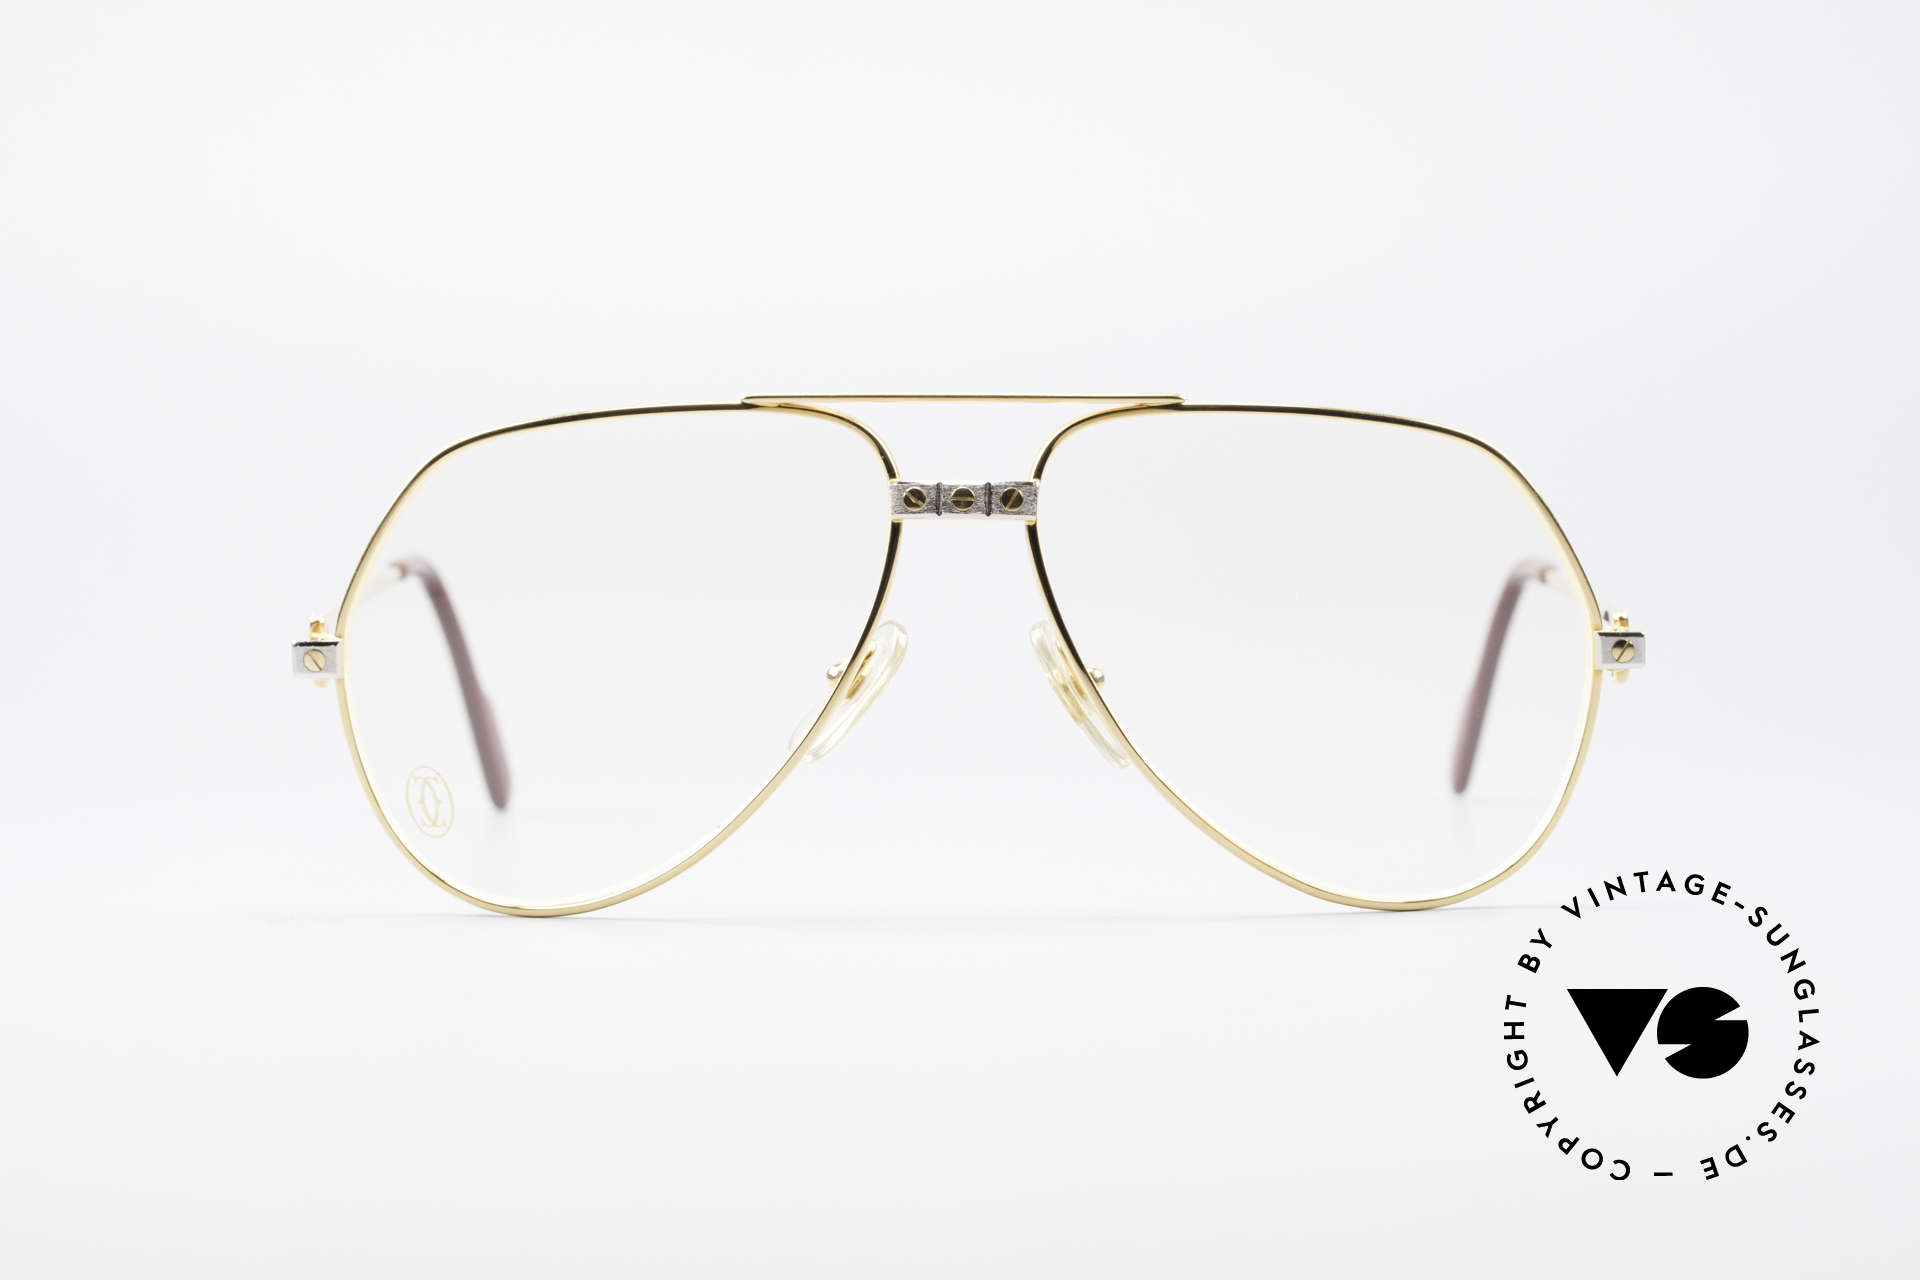 677ecc73b5f9 You may also like these glasses. Cartier Vendome Laque ...